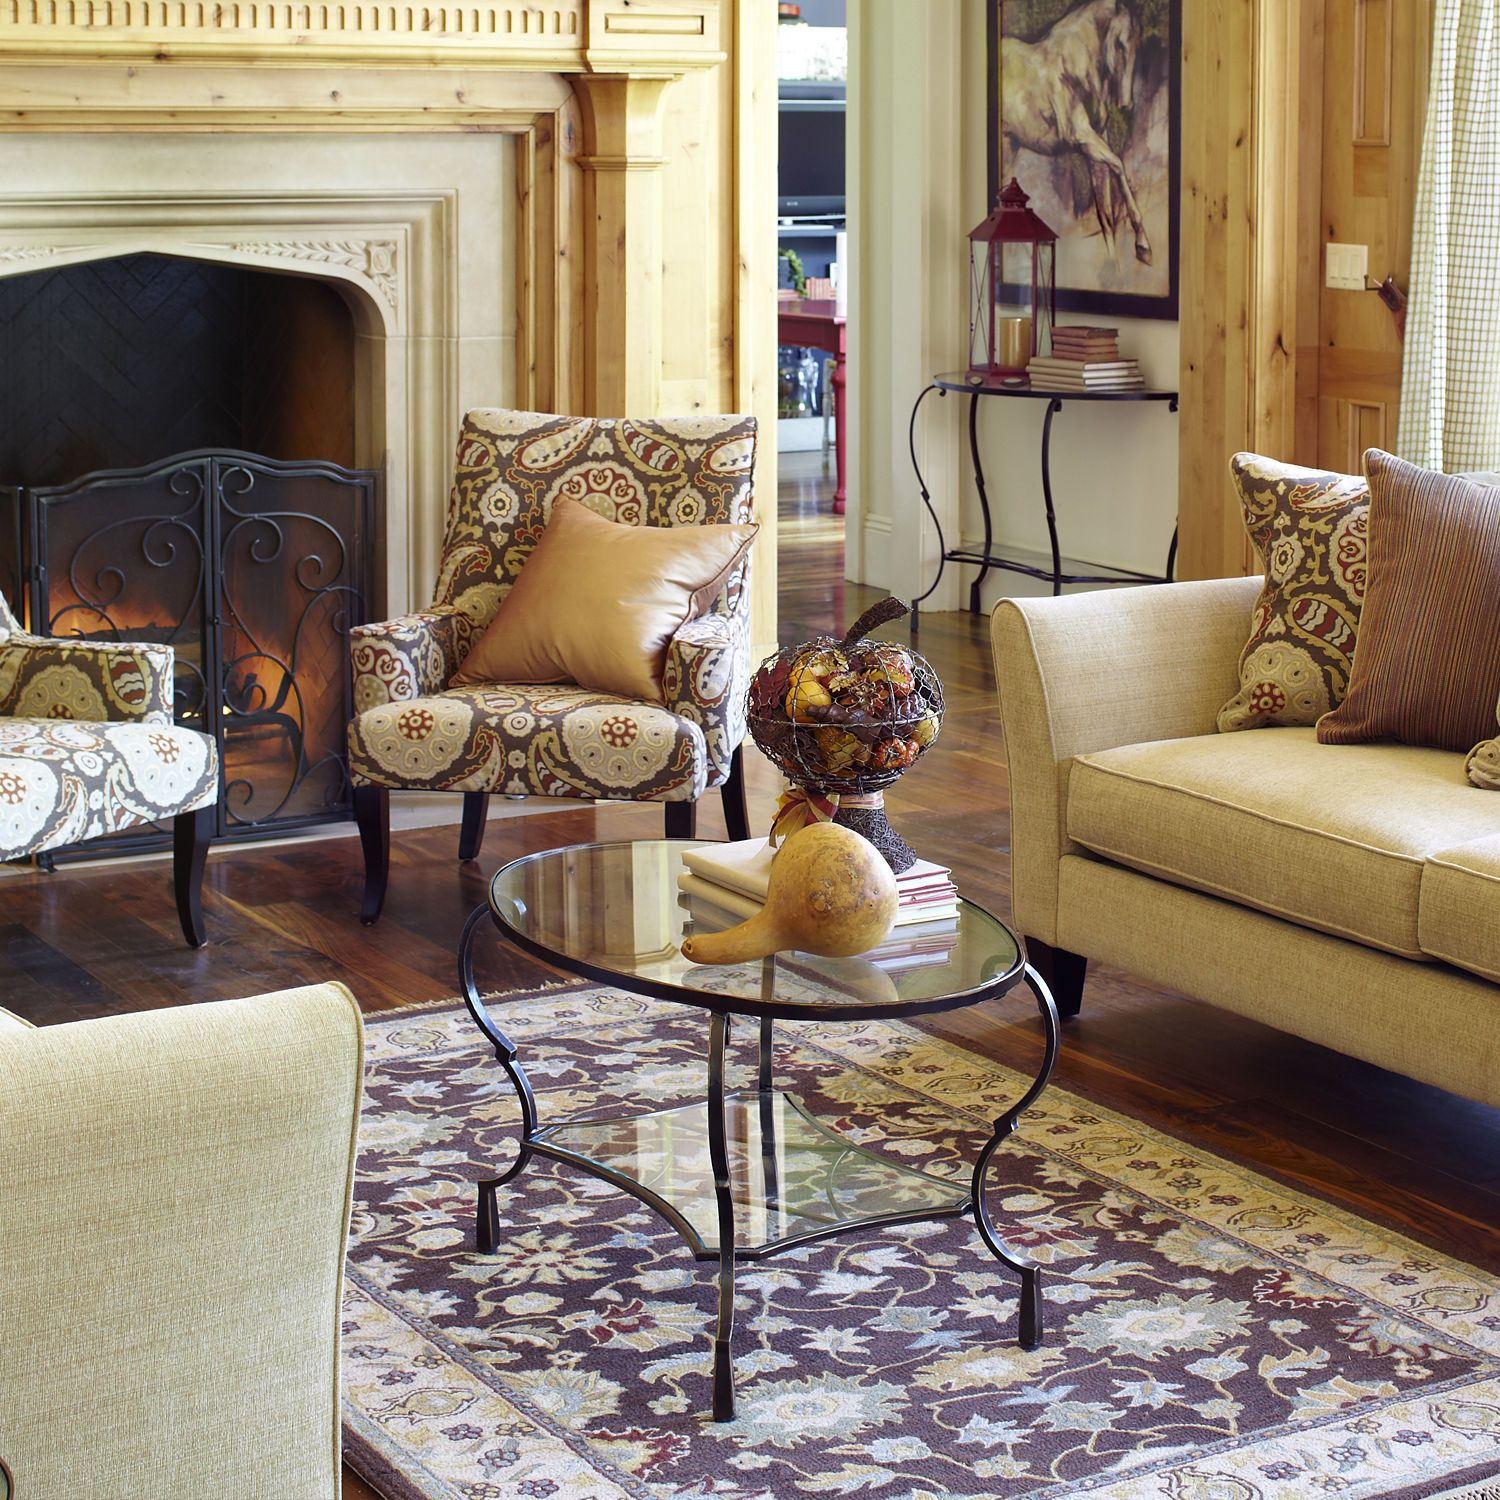 Chasca Glass Top Brown Oval Coffee Table Coffee Table Oval Coffee Tables Living Room Inspiration